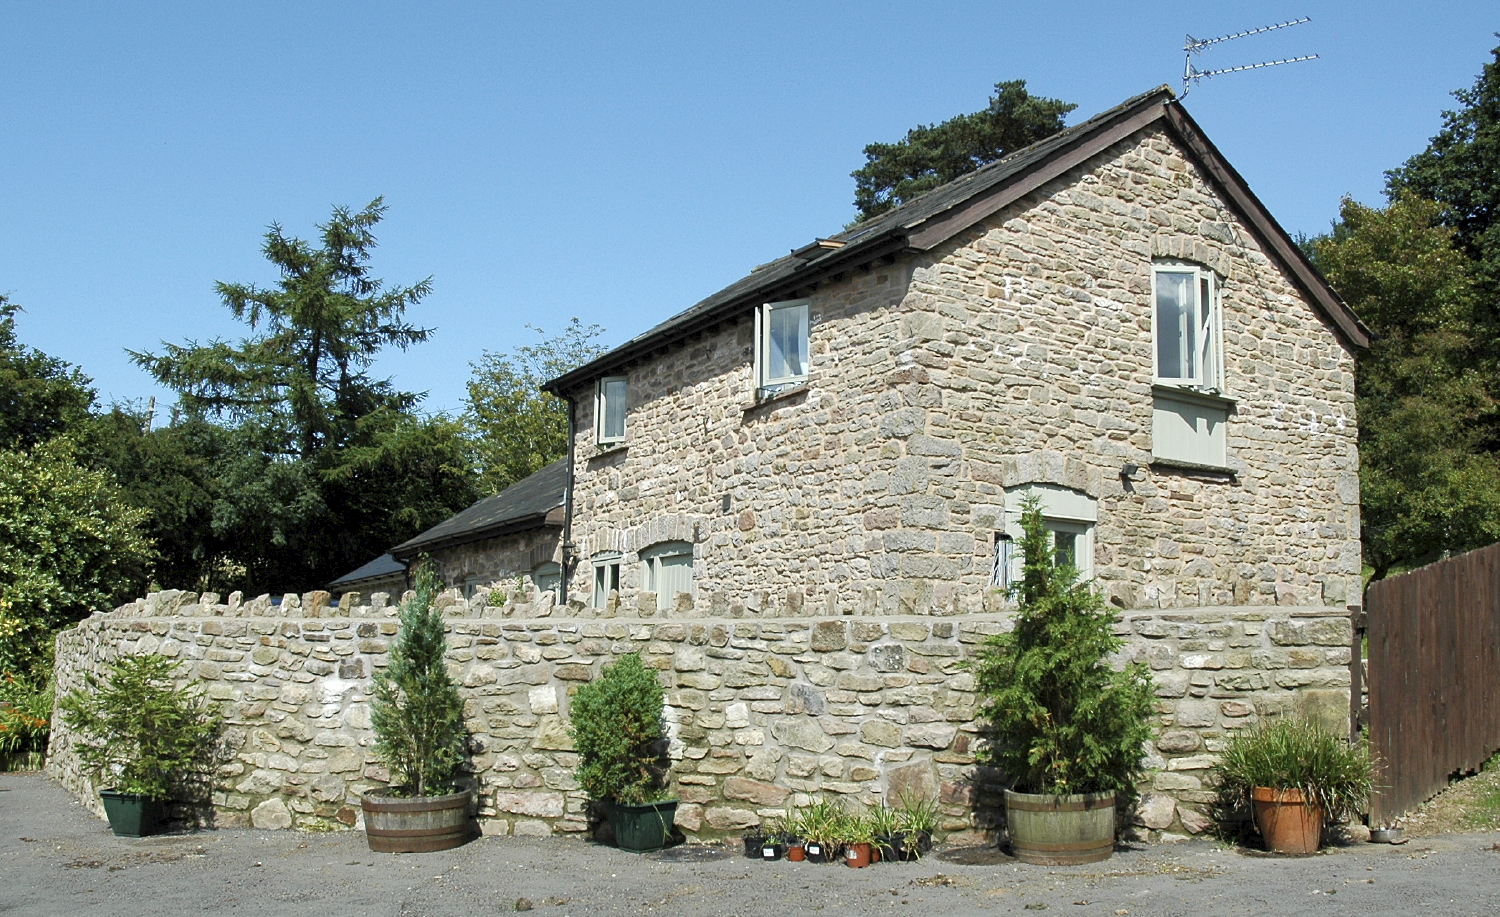 shire newton barn conversion side elevation photo chepstow monmouthshire builder.jpg